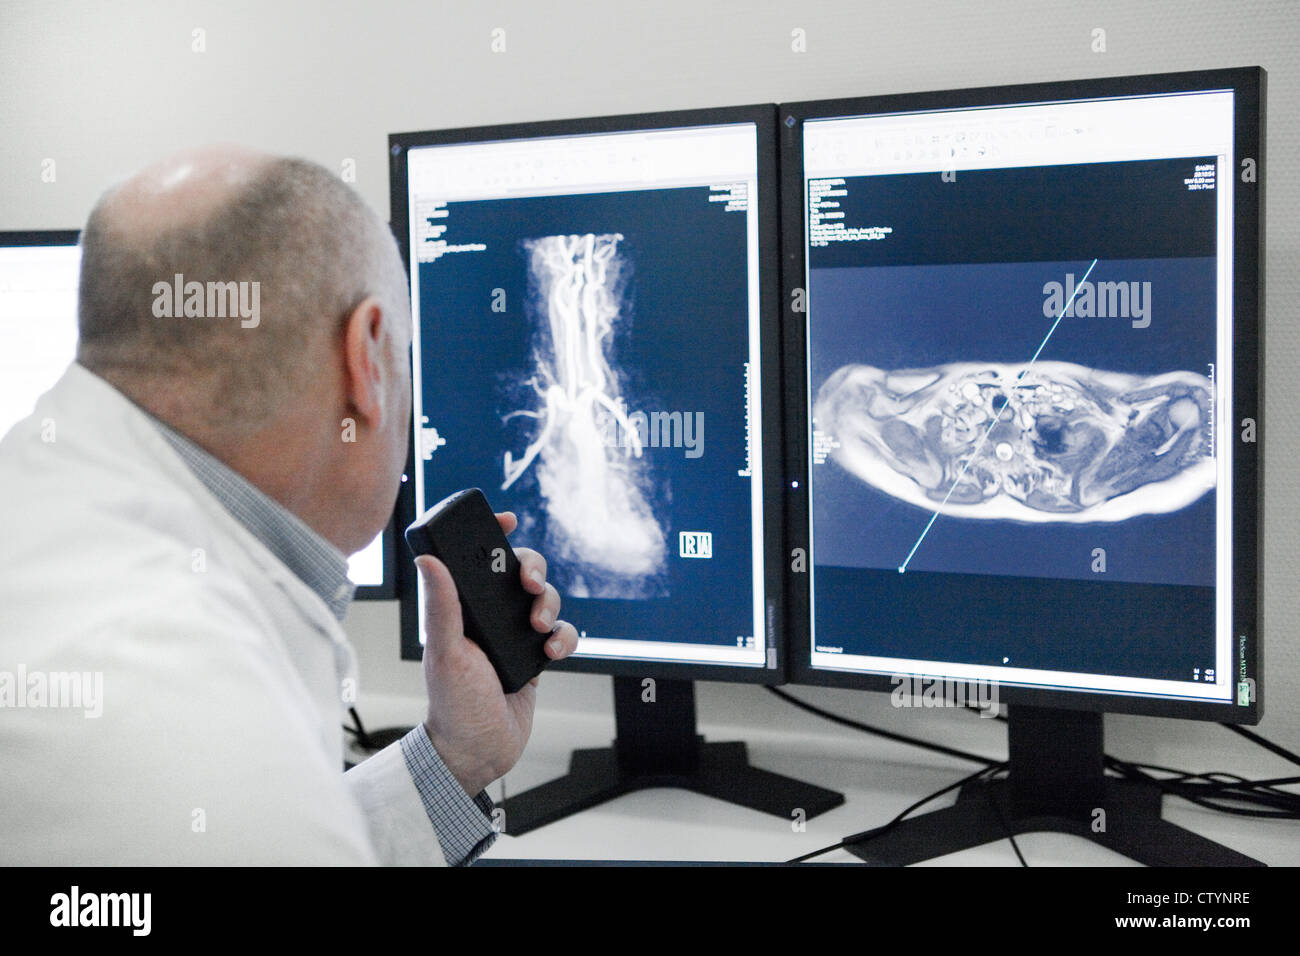 Radiologist examines a MRI scan image - Stock Image